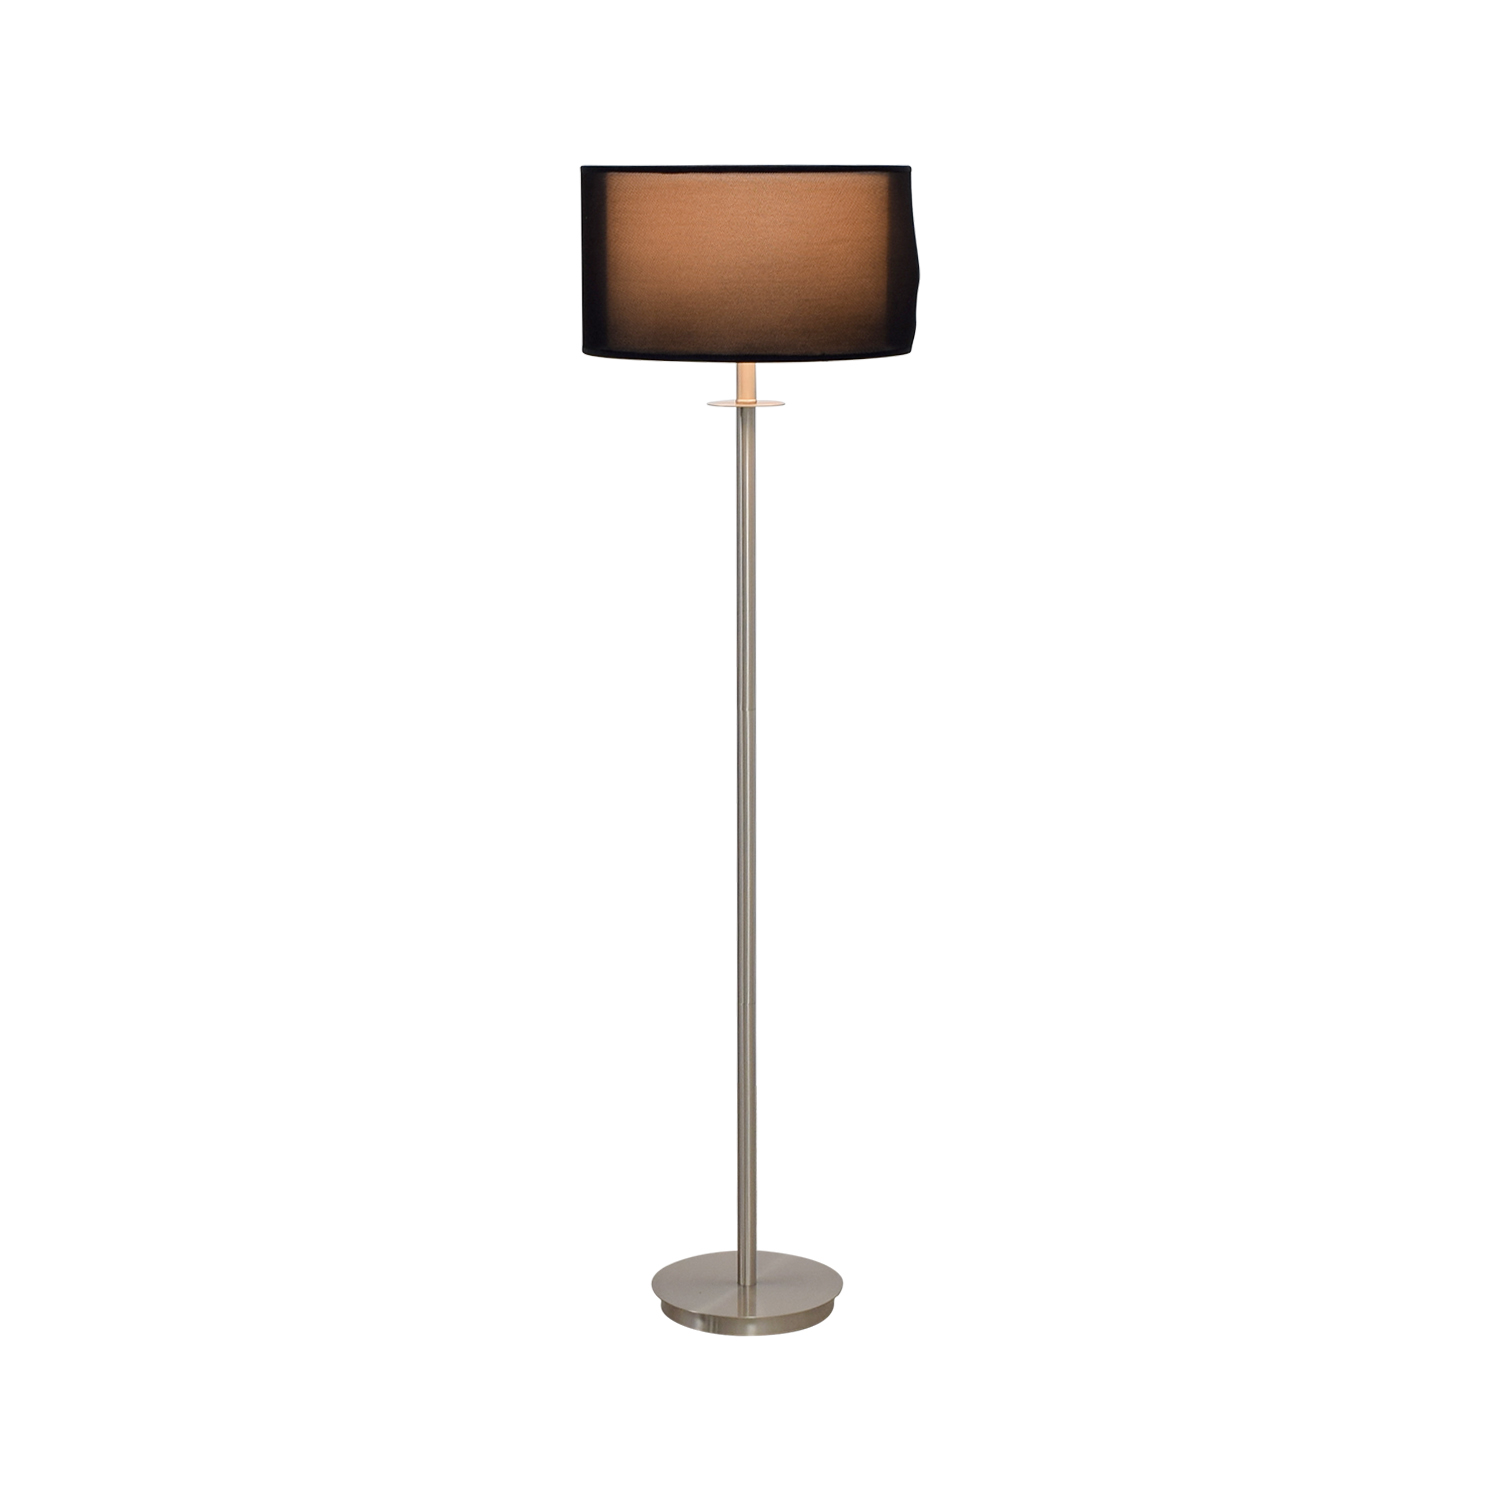 71 off metal floor lamp with black shade decor metal floor lamp with black shade discount aloadofball Gallery